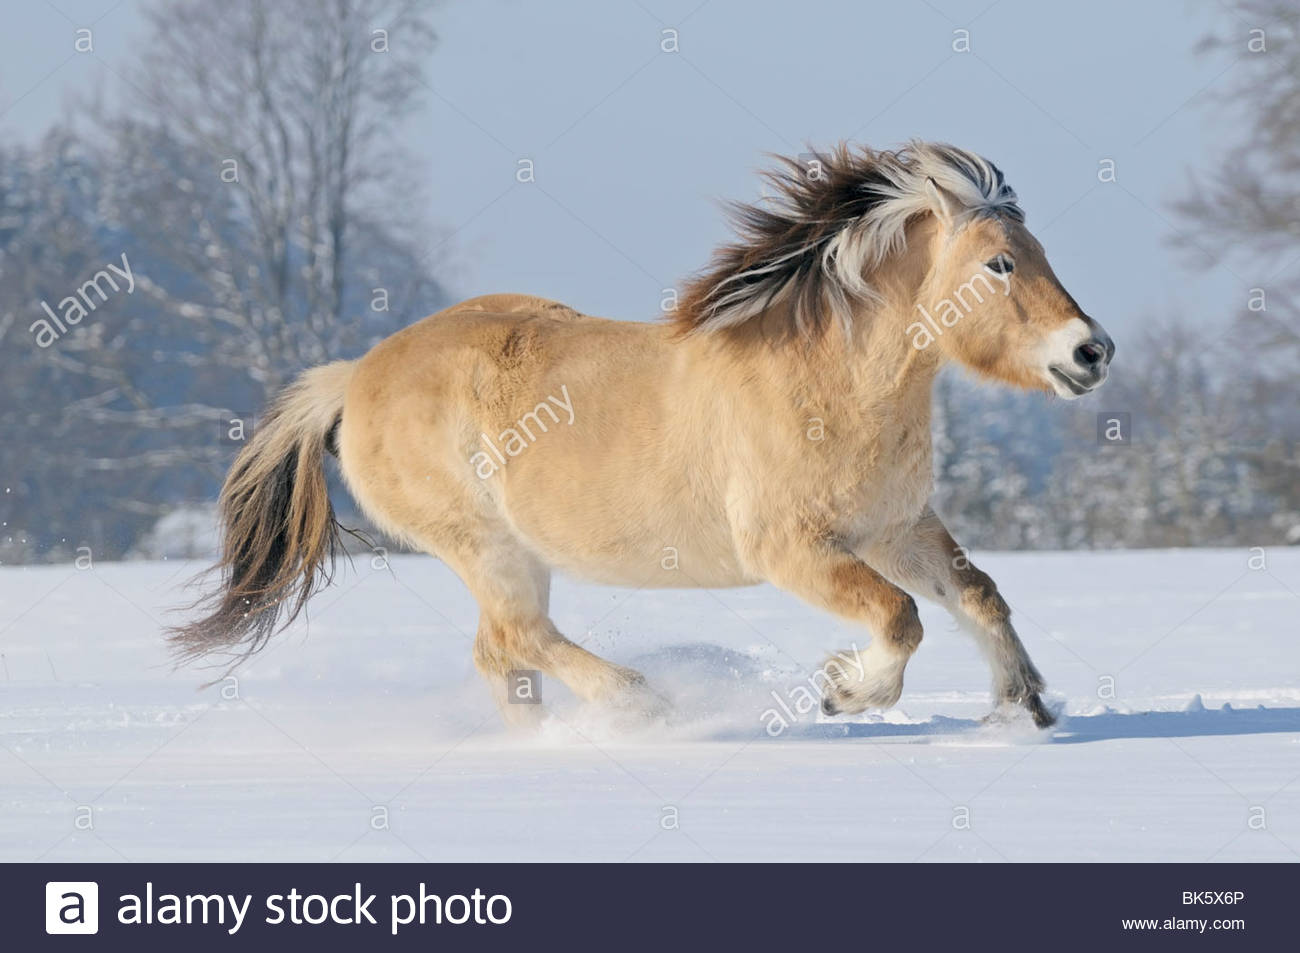 Norwegian horse in winter - Stock Image